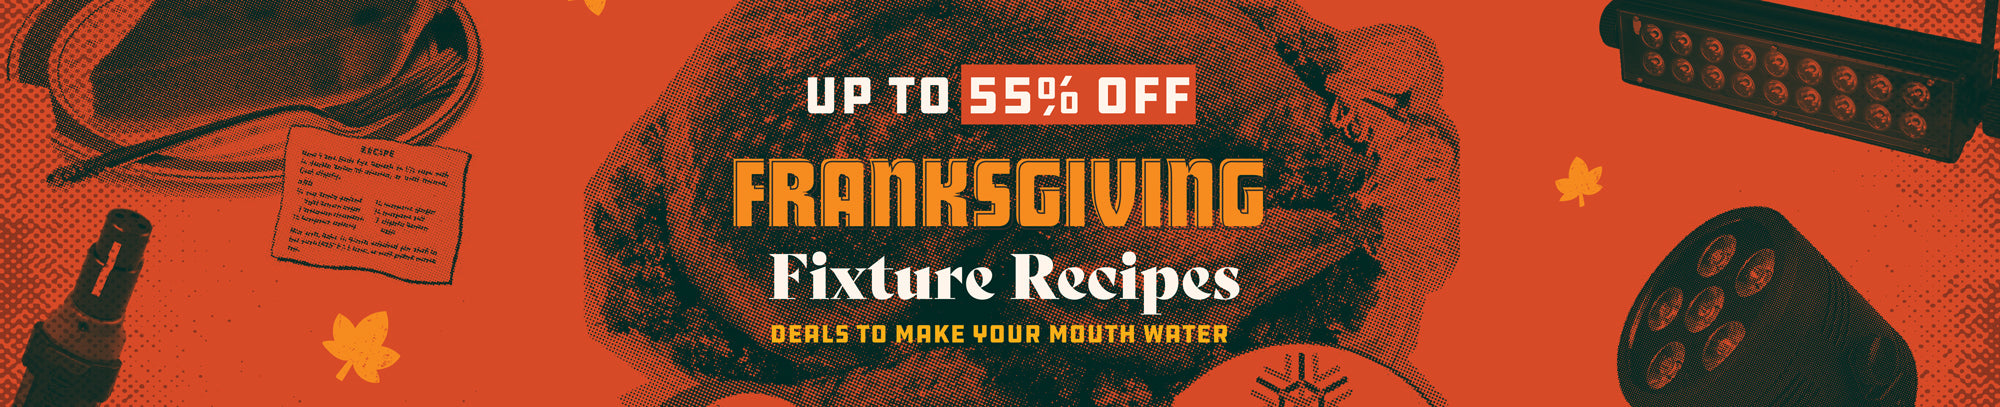 Franksgiving Sale